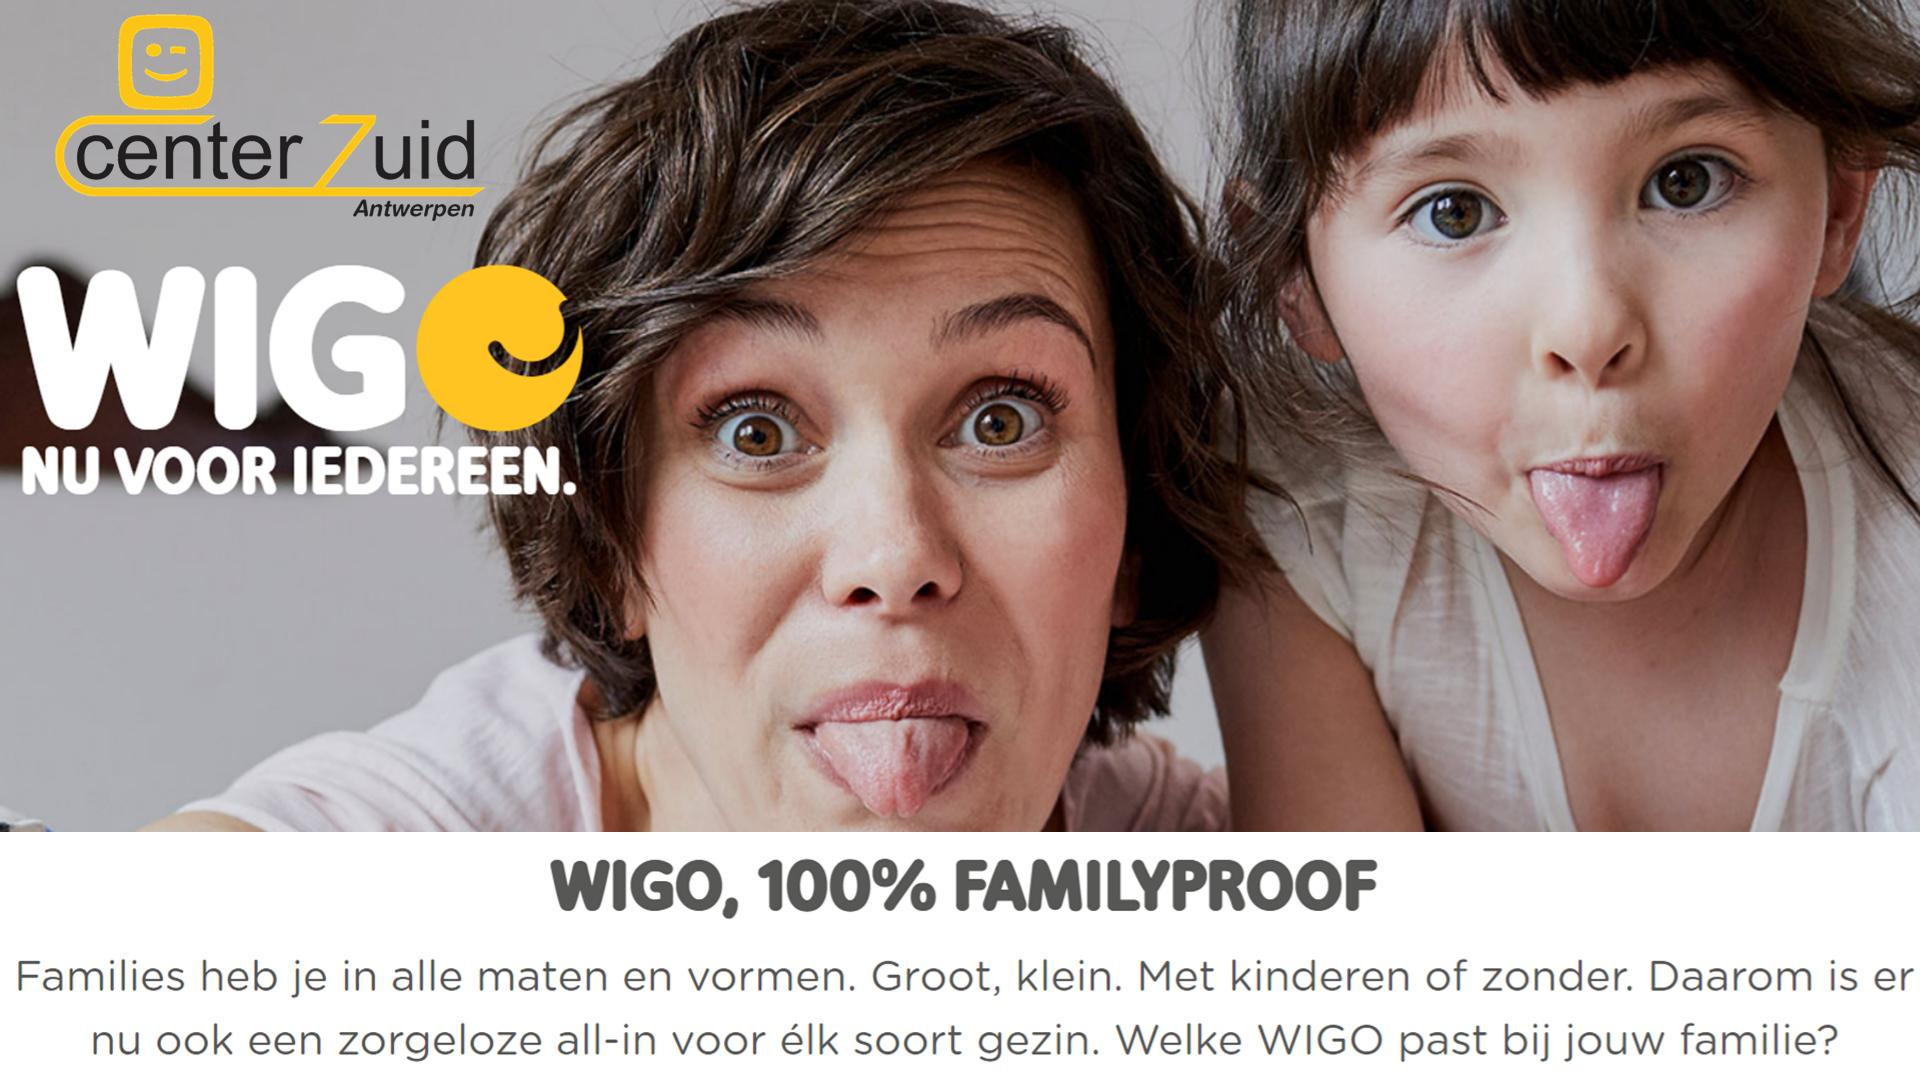 wigo - family proof - telenet